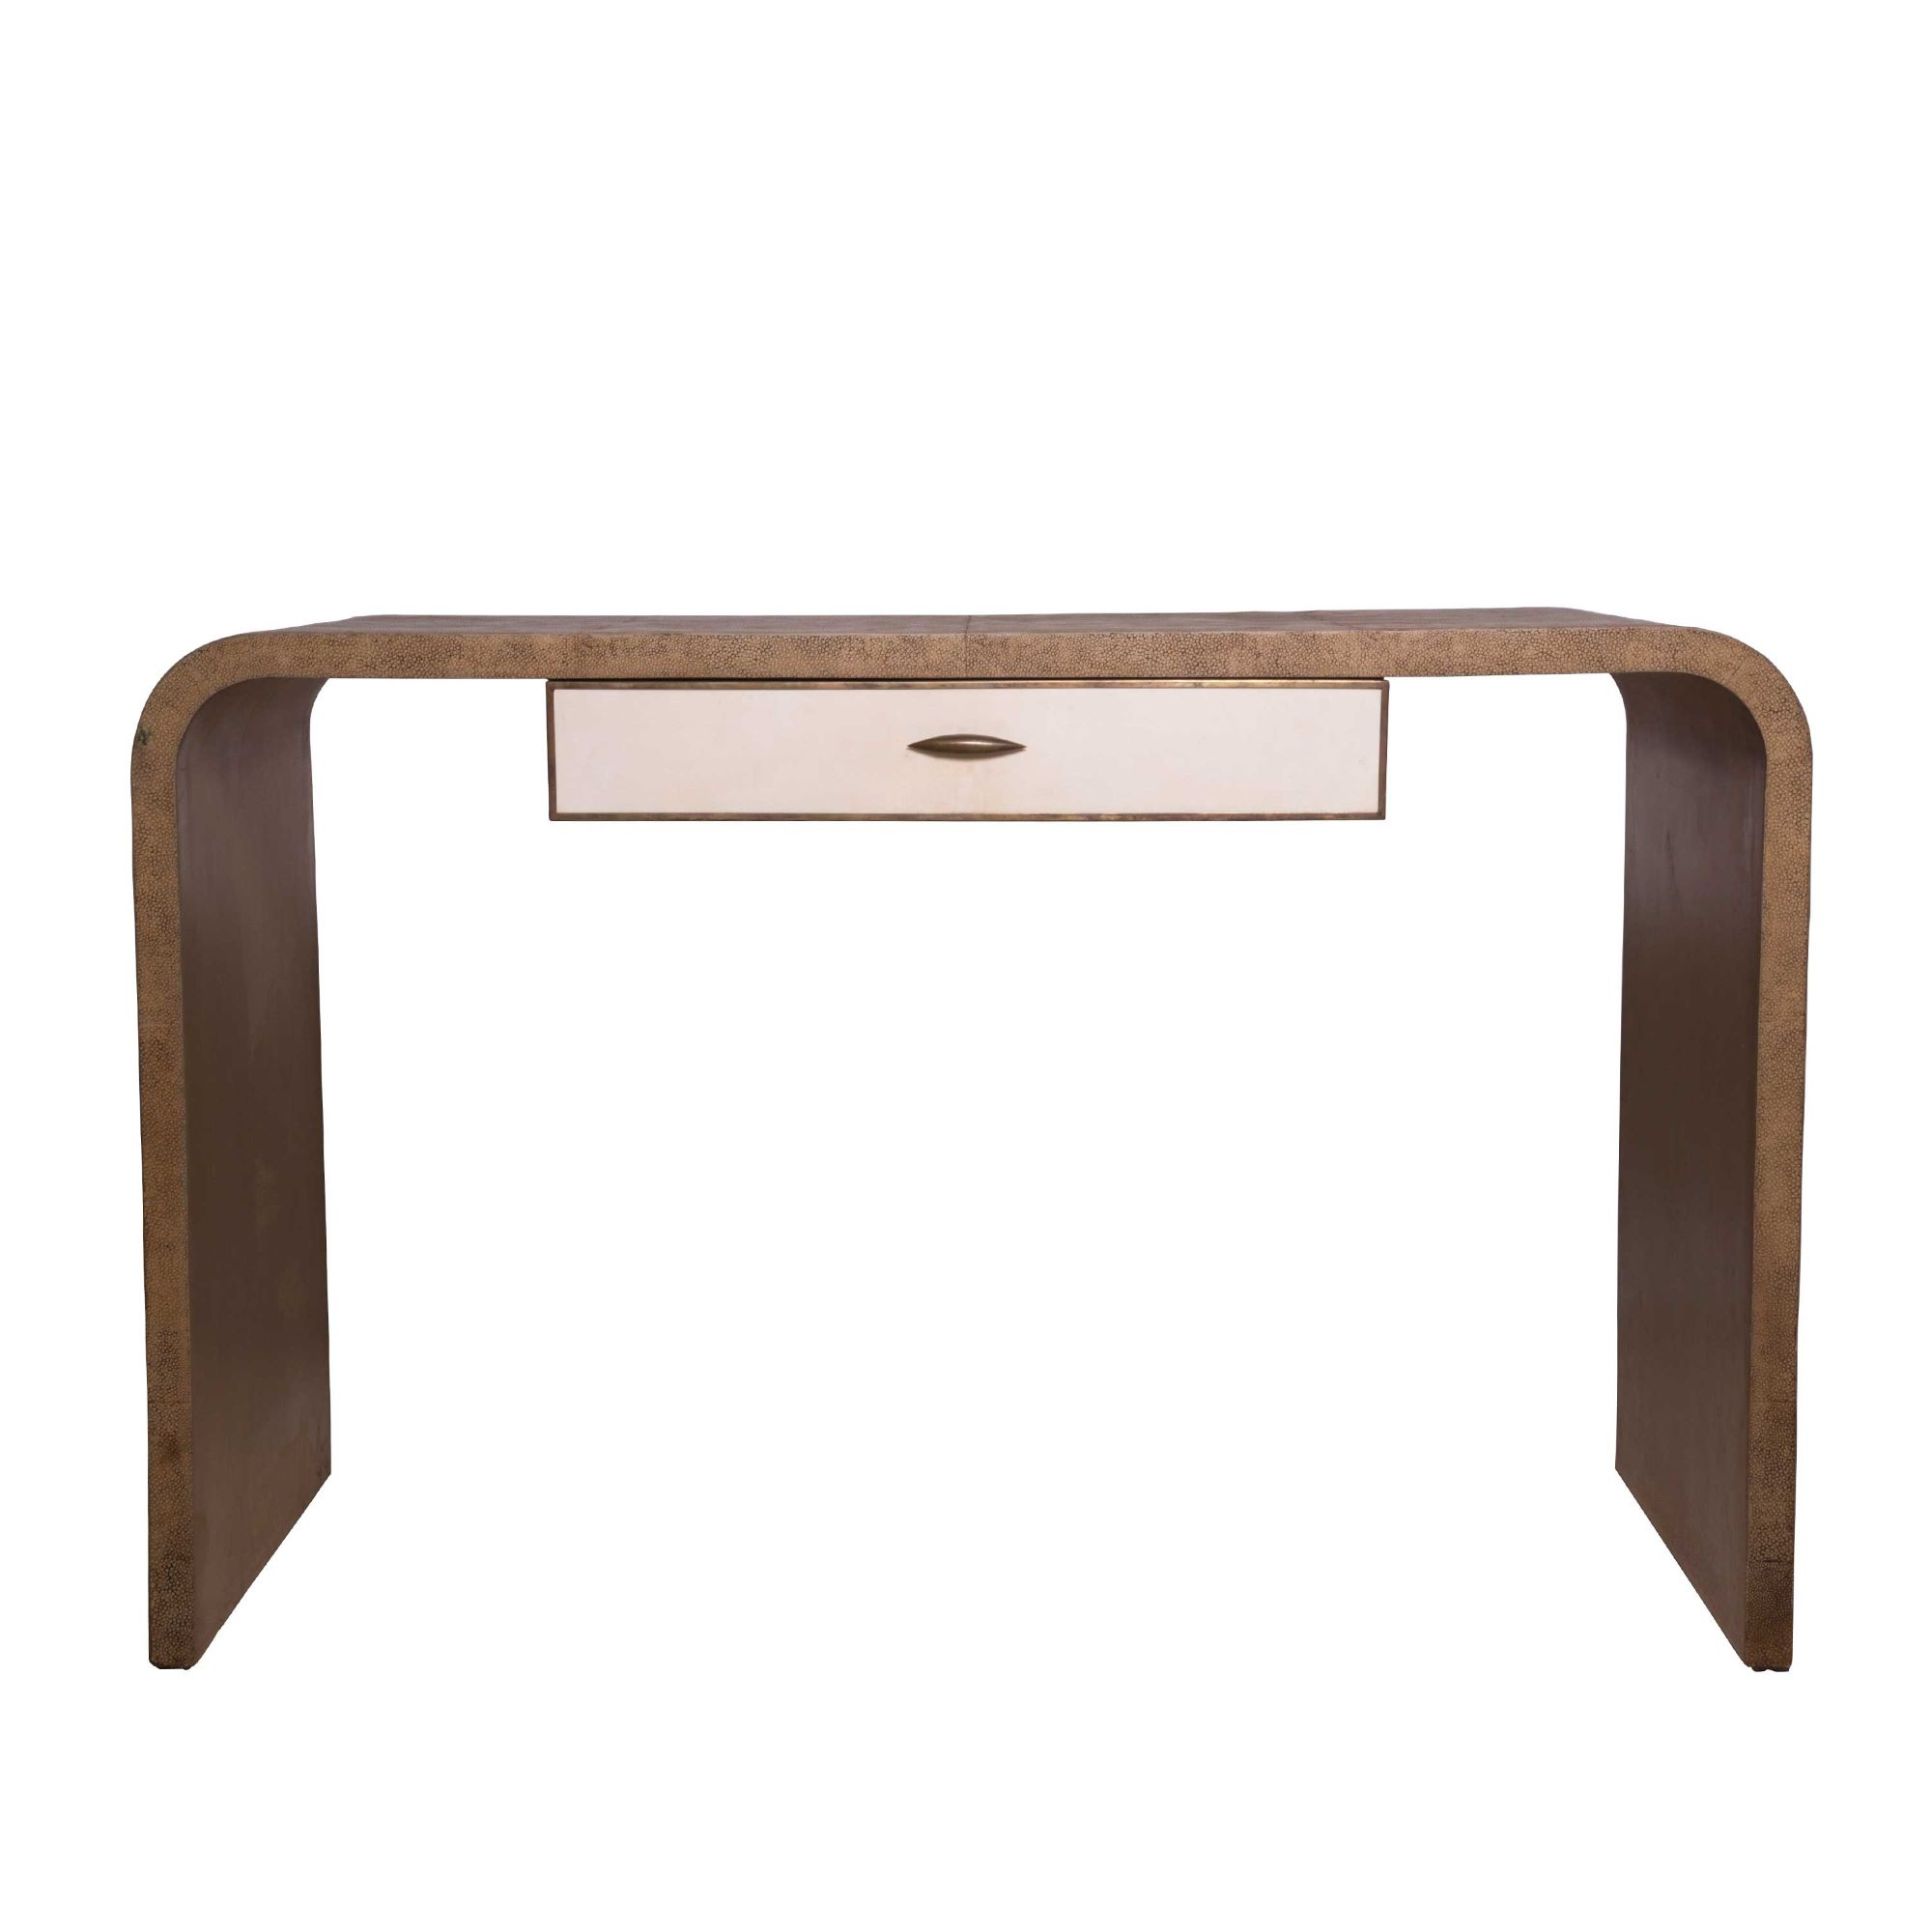 French Shagreen Console Table Throughout Grey Shagreen Media Console Tables (View 7 of 30)